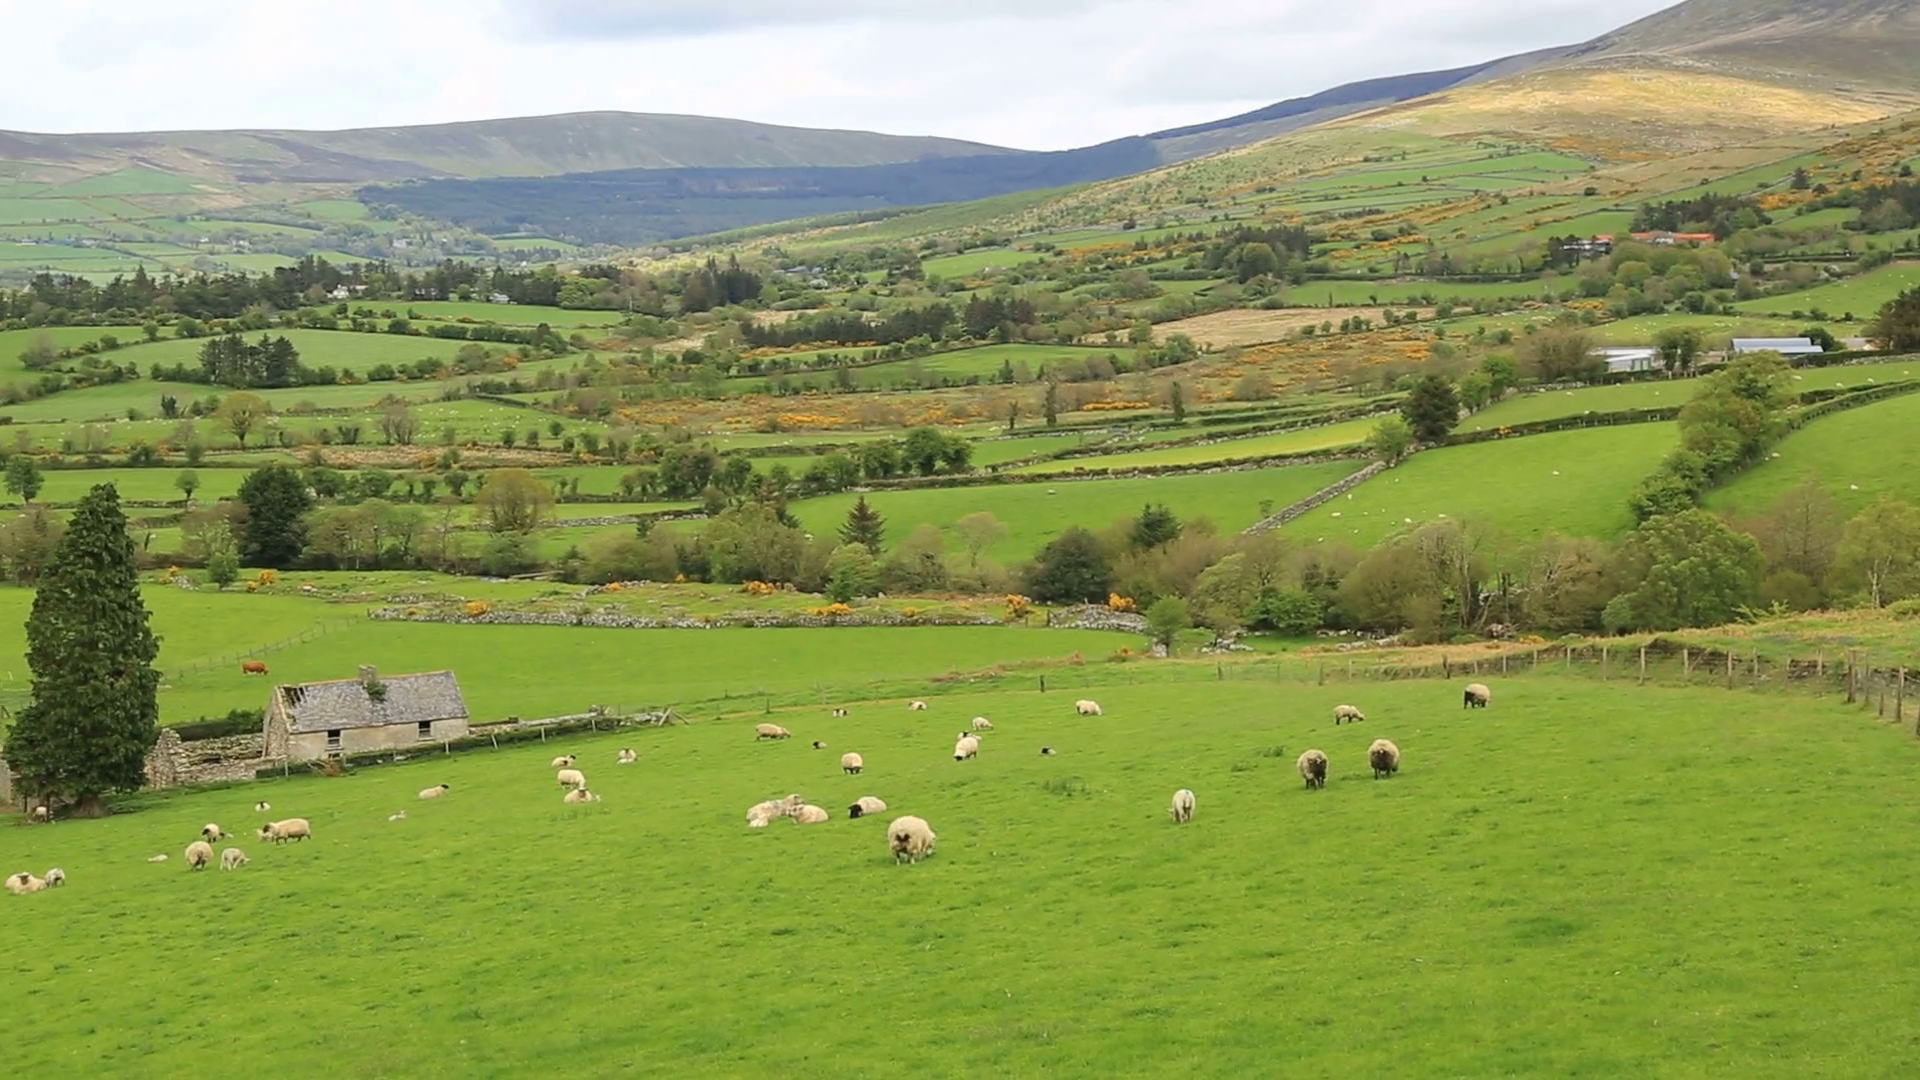 videoblocks-rolling-hills-of-irish-landscape_seeq5u7v5e_thumbnail-full01